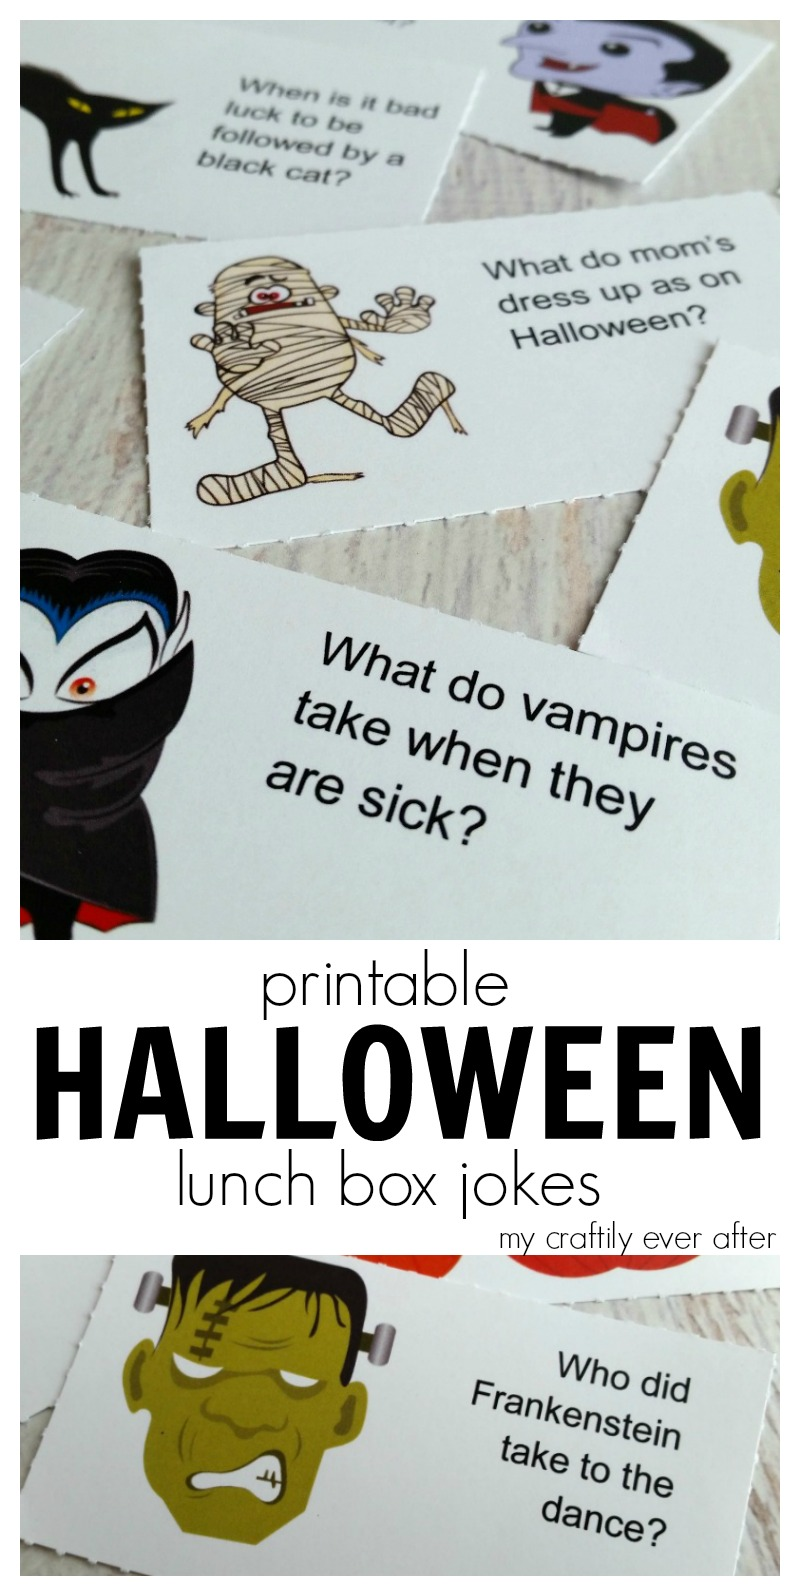 halloween-lunch-box-jokes-printable